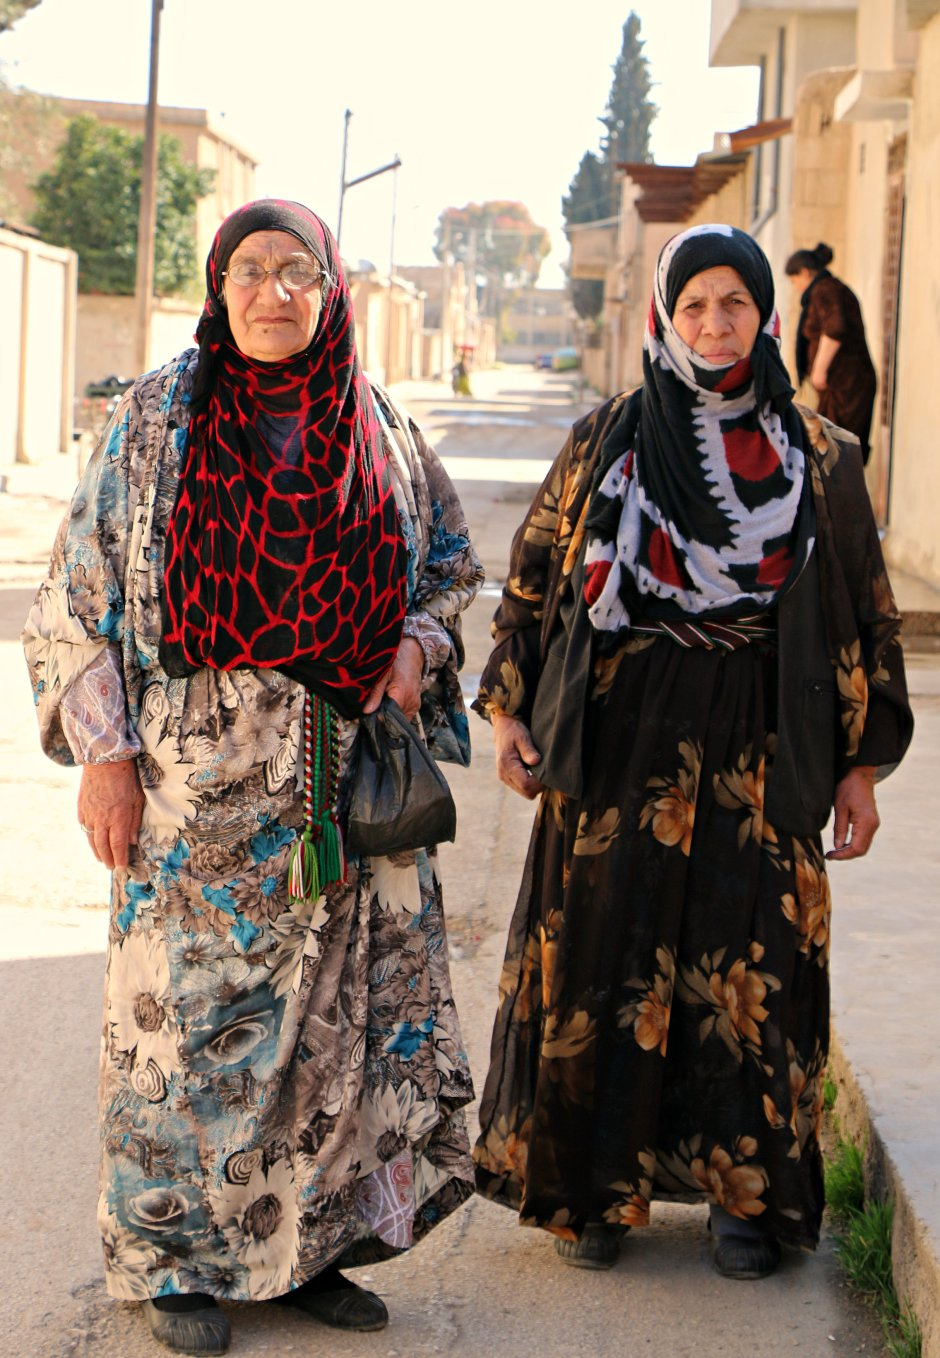 Traditional clothes for Kurdish women, Amuda in March 2015 by Ibrahim Hassan via Afrta FM